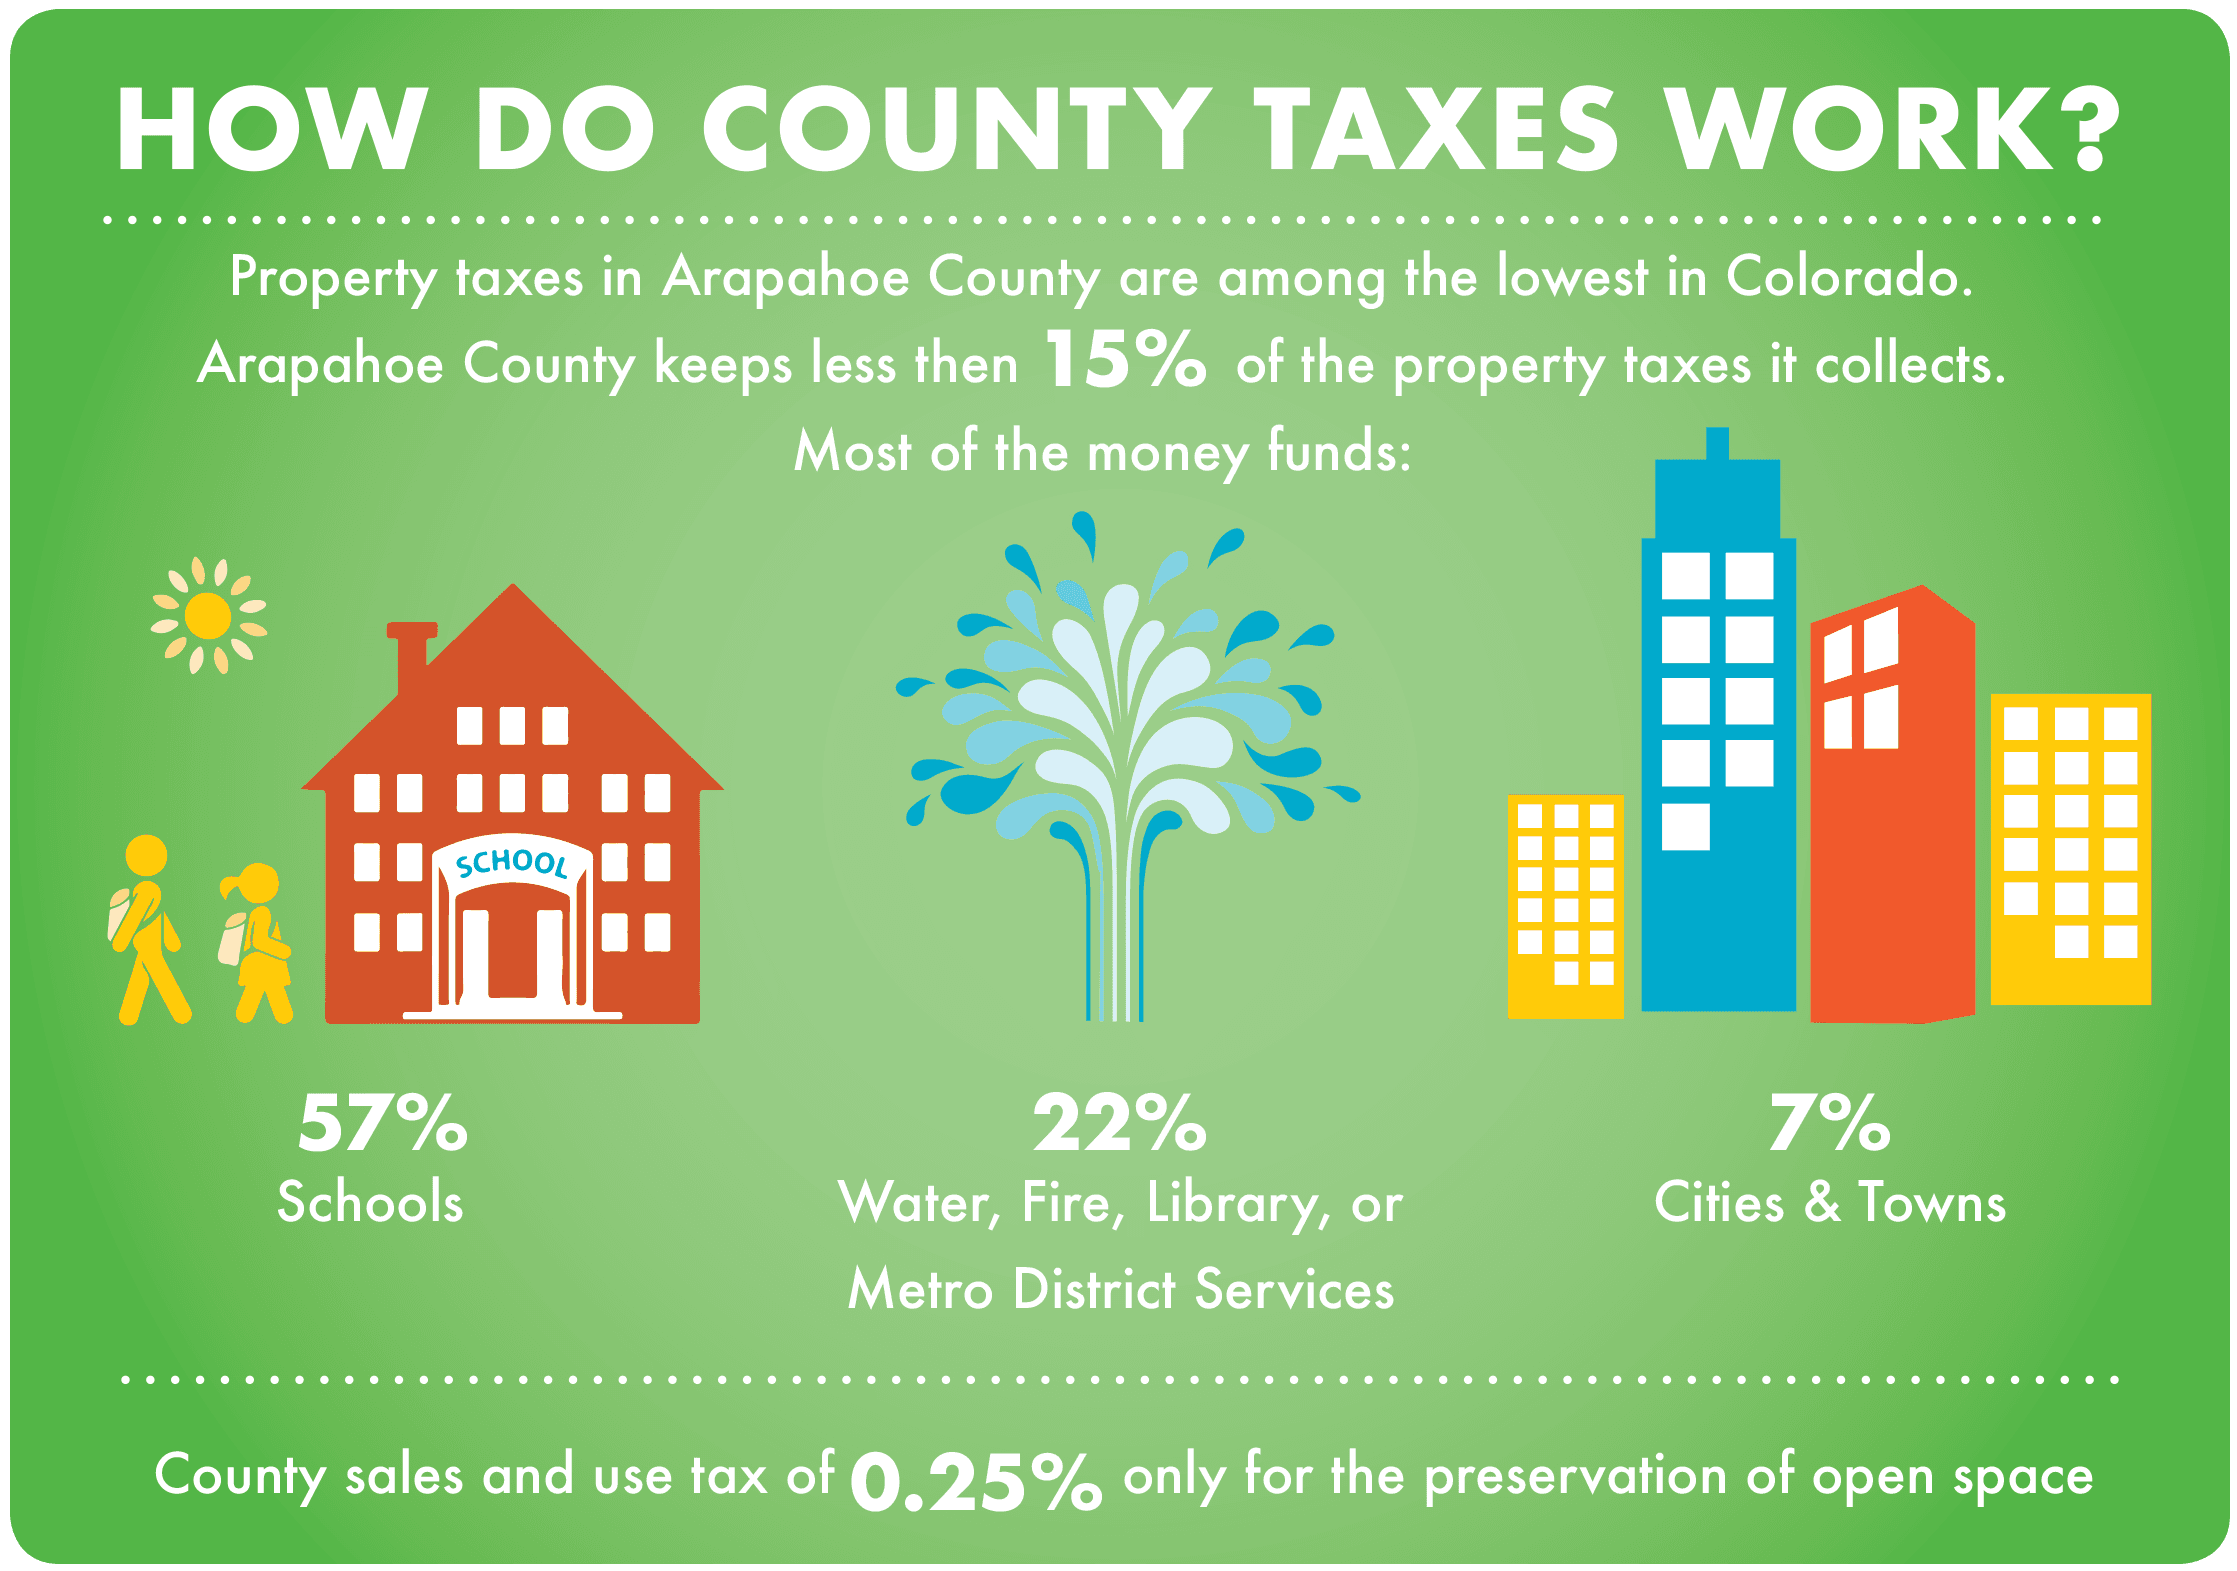 How do County Taxes Work - Infographic